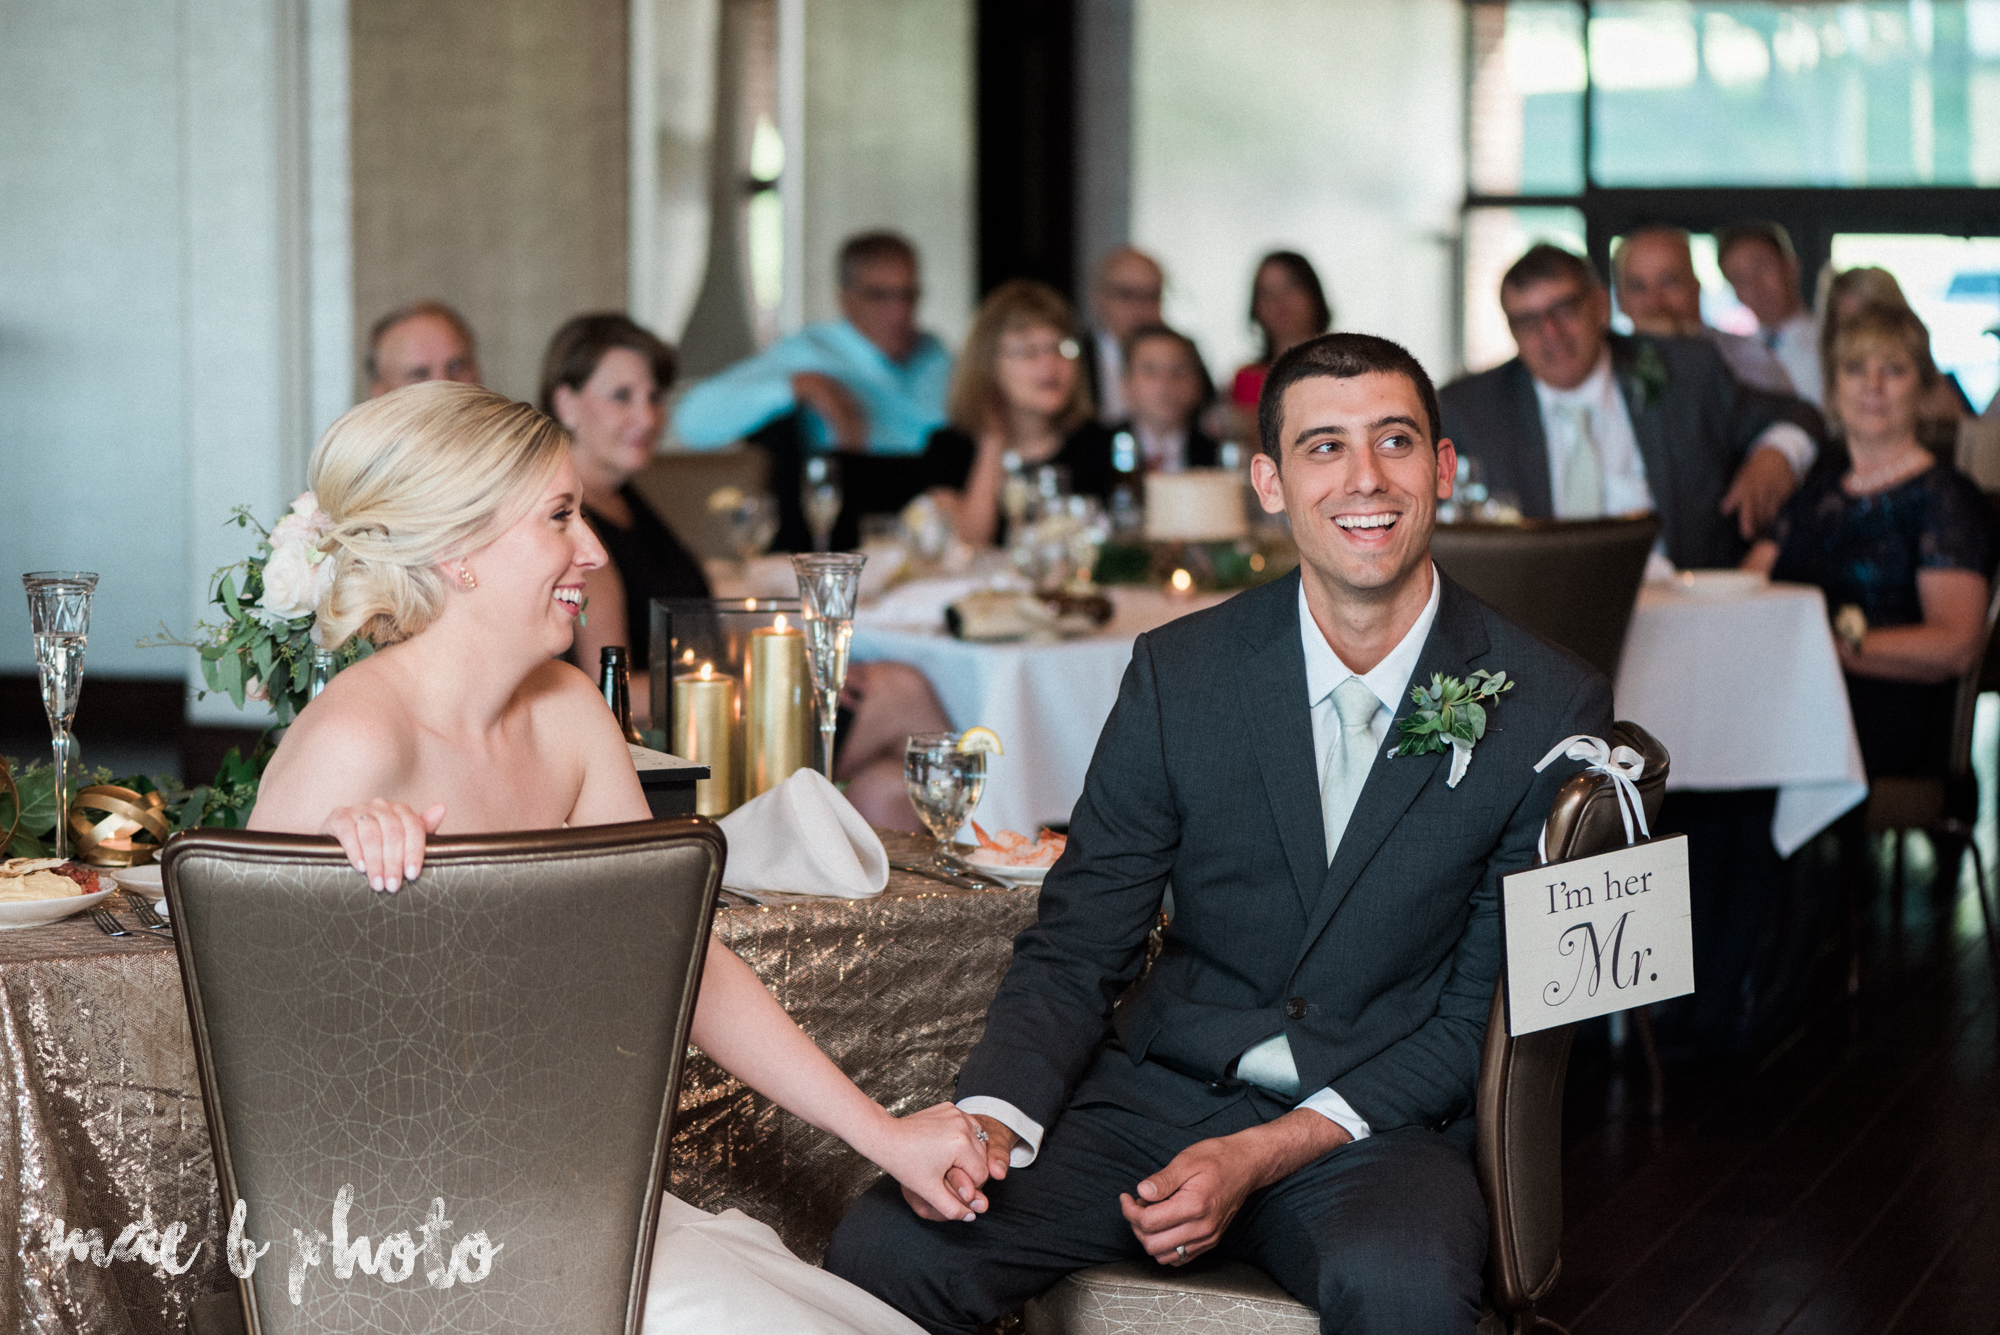 emily and michael's industrial chic summer country club wedding at the lake club in poland ohio photographed by cleveland wedding photographer mae b photo-117.jpg